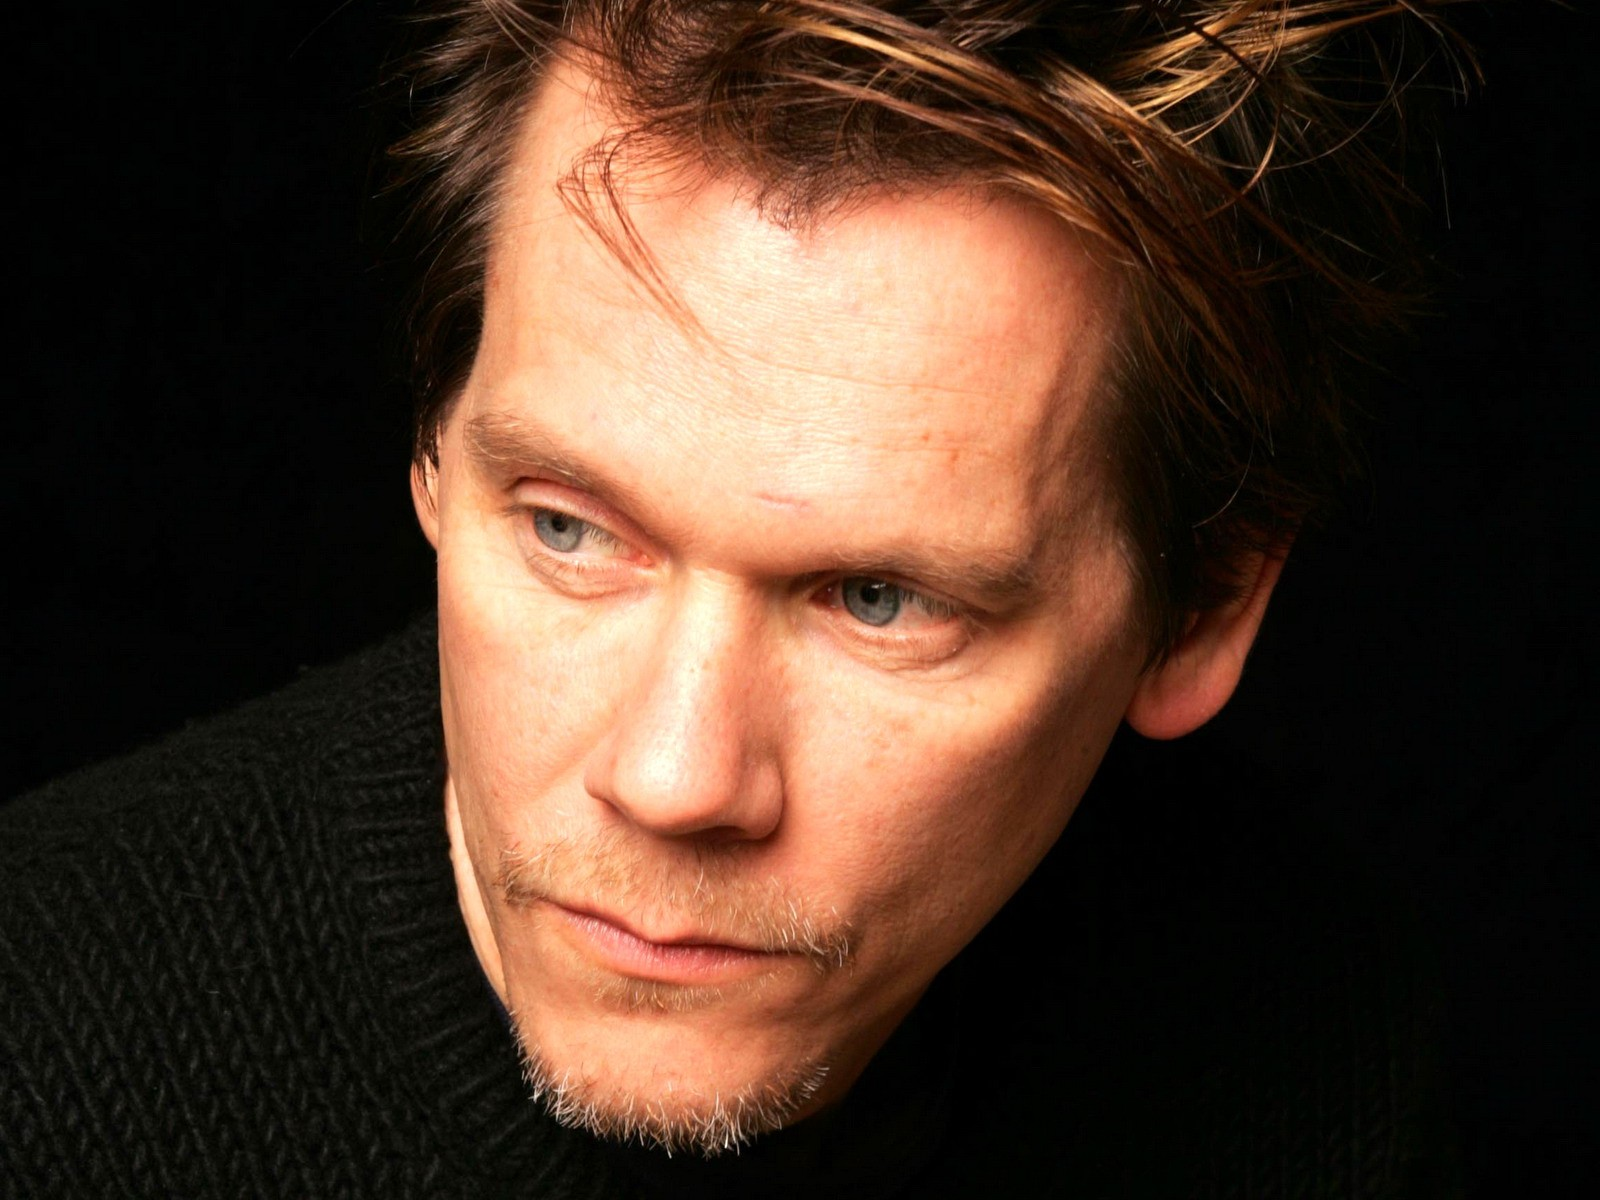 1600x1200 - Kevin Bacon Wallpapers 17